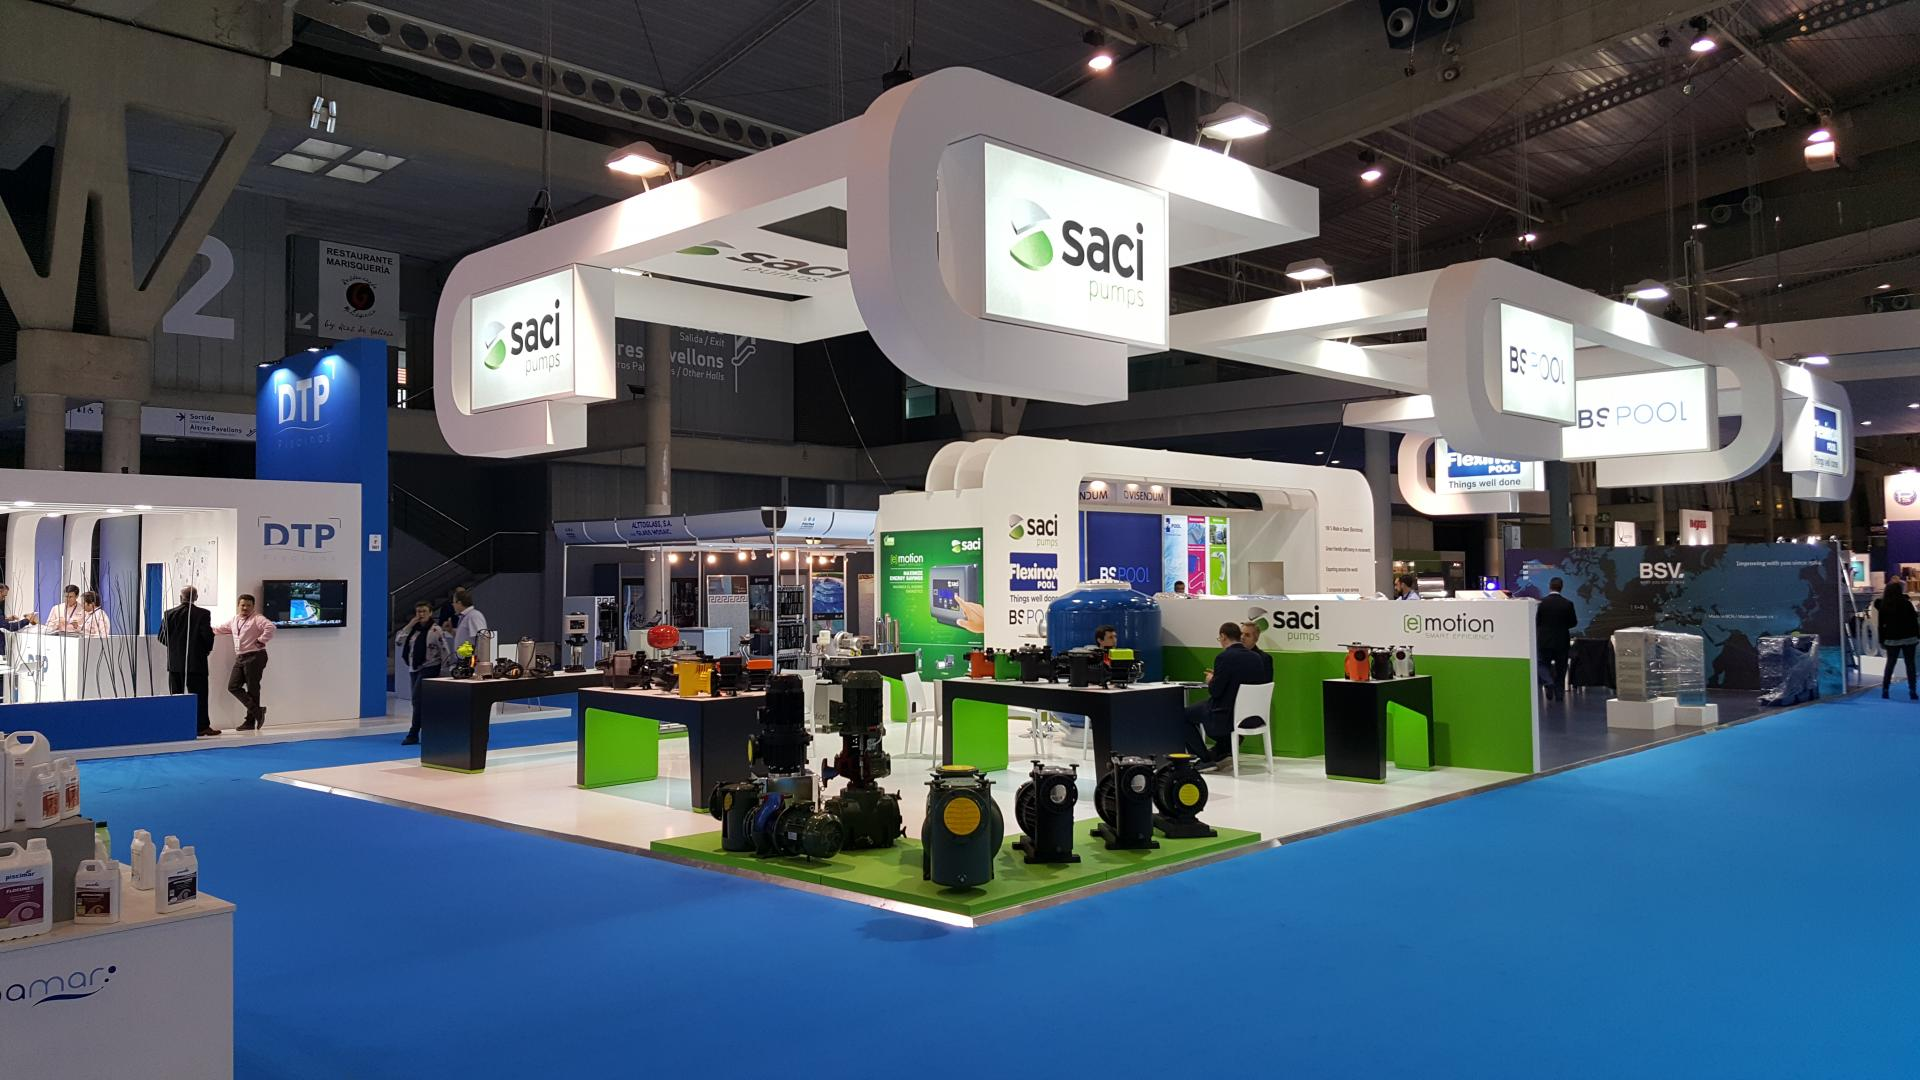 Salon Barcelona 2015 (13-16 October 2015)